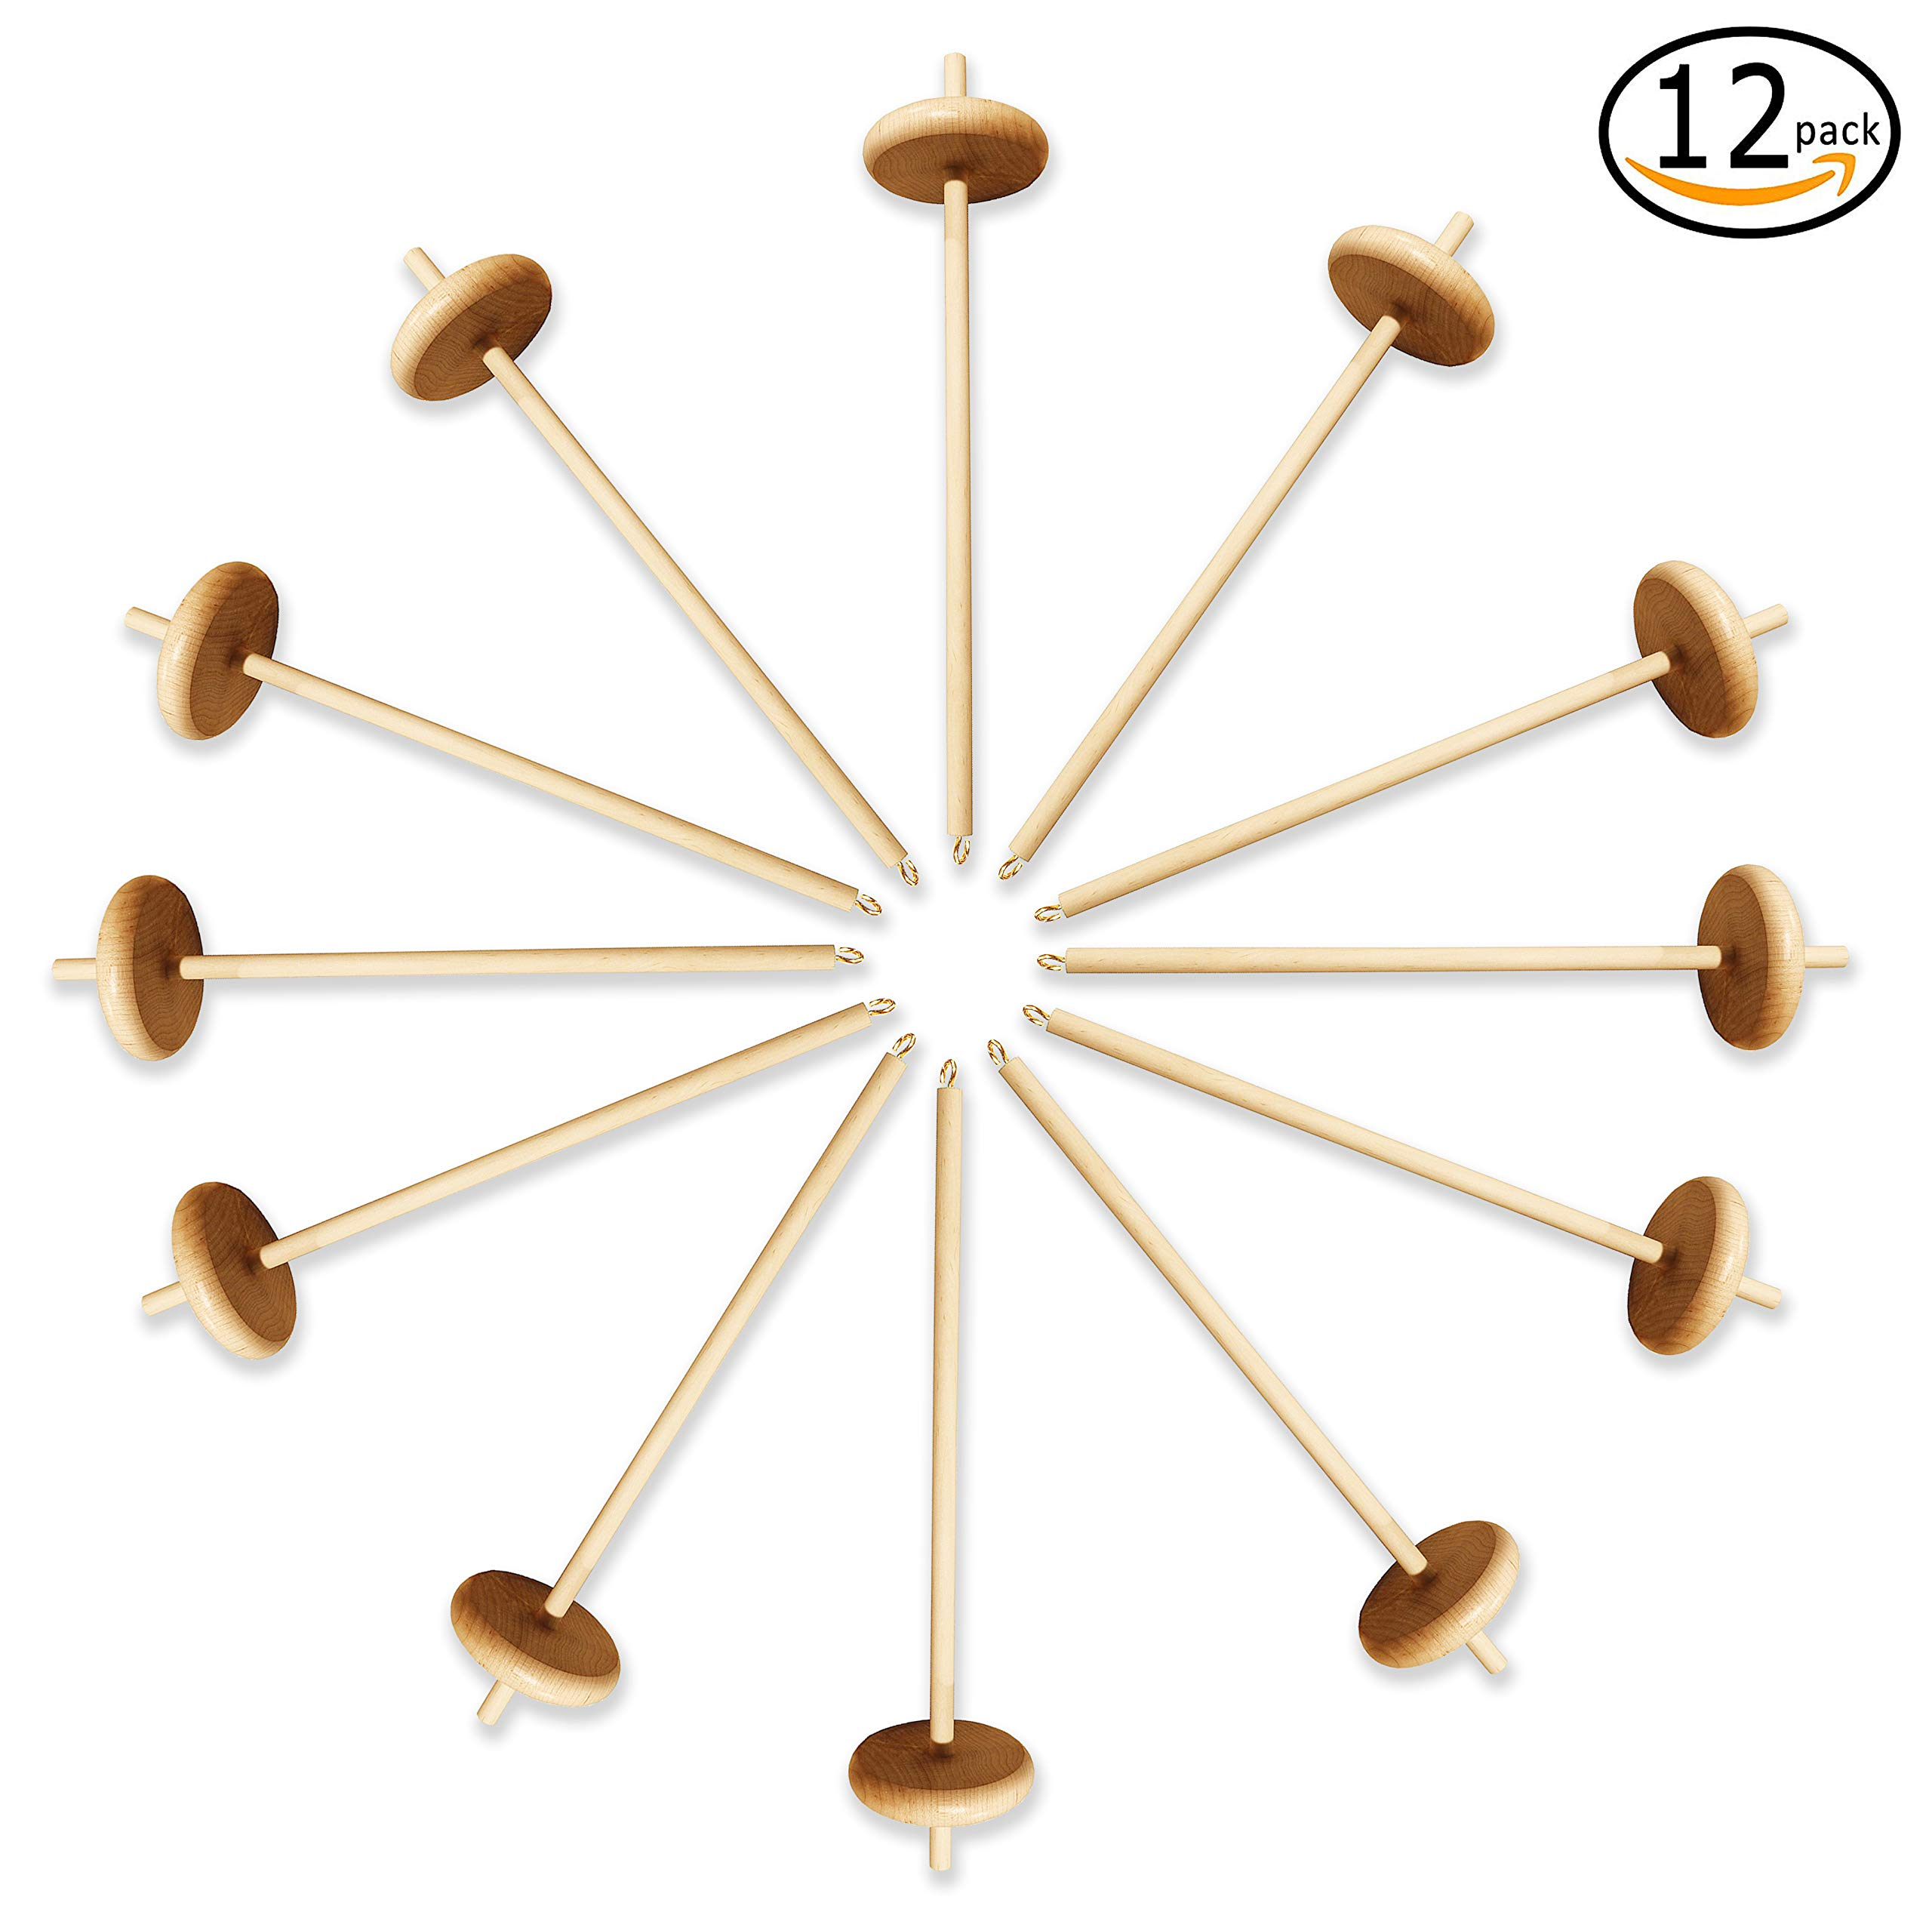 Happy Classy Drop Spindle Maple Spinning 12'' Bottom Whorl 12 Pack